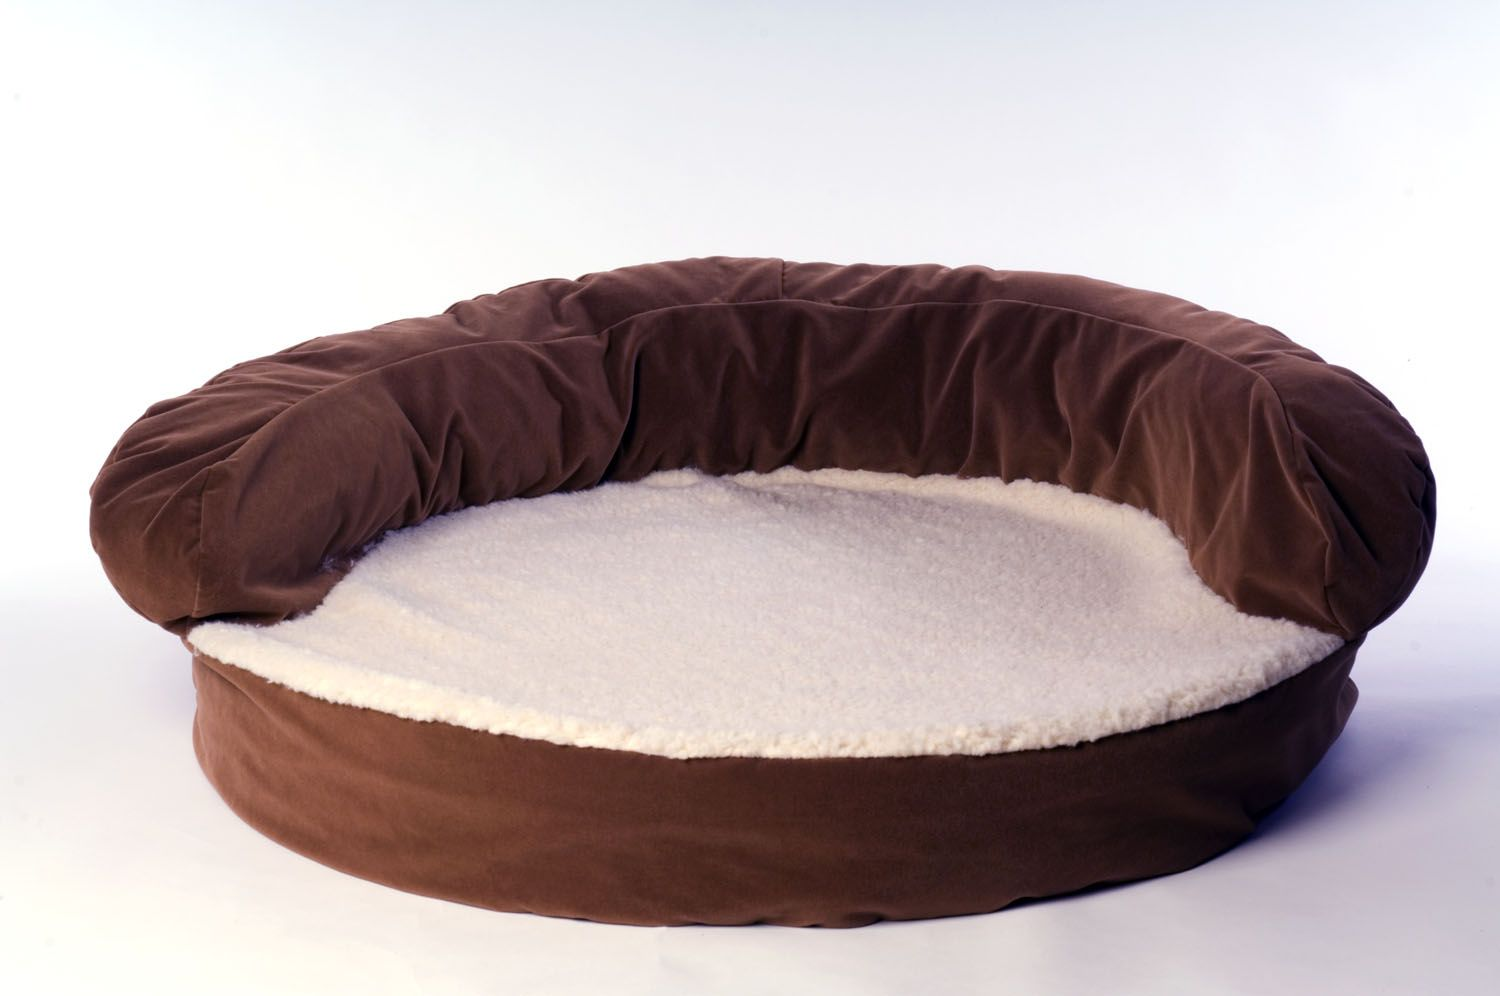 Carolina Pet Large Ortho Sleeper Bolster Bed - Chocolate